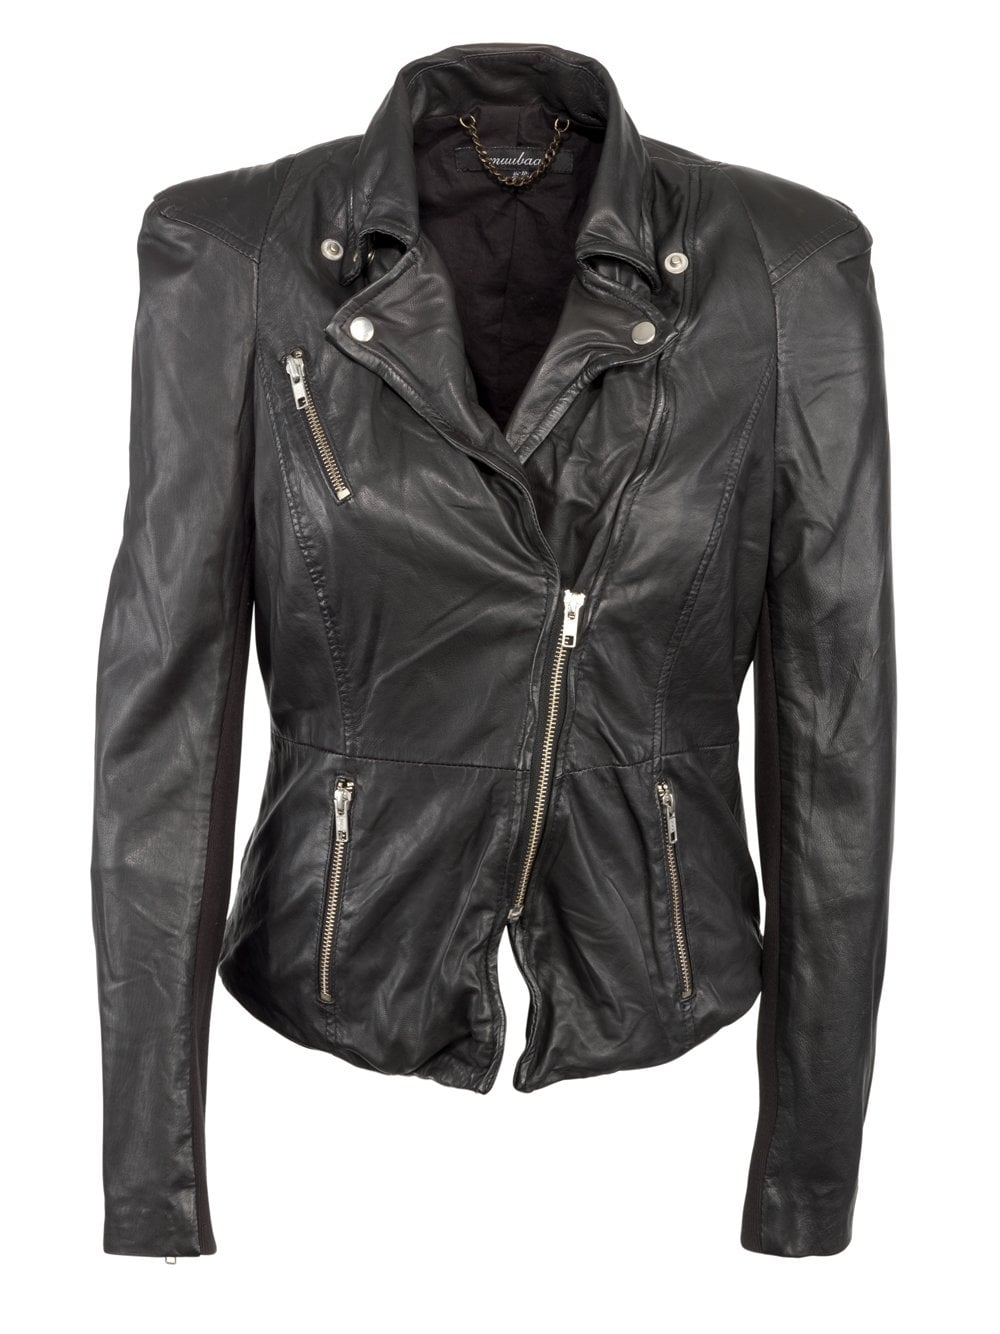 47e9b51a6 Cion 2012 Fitted Leather Biker Jacket in Black